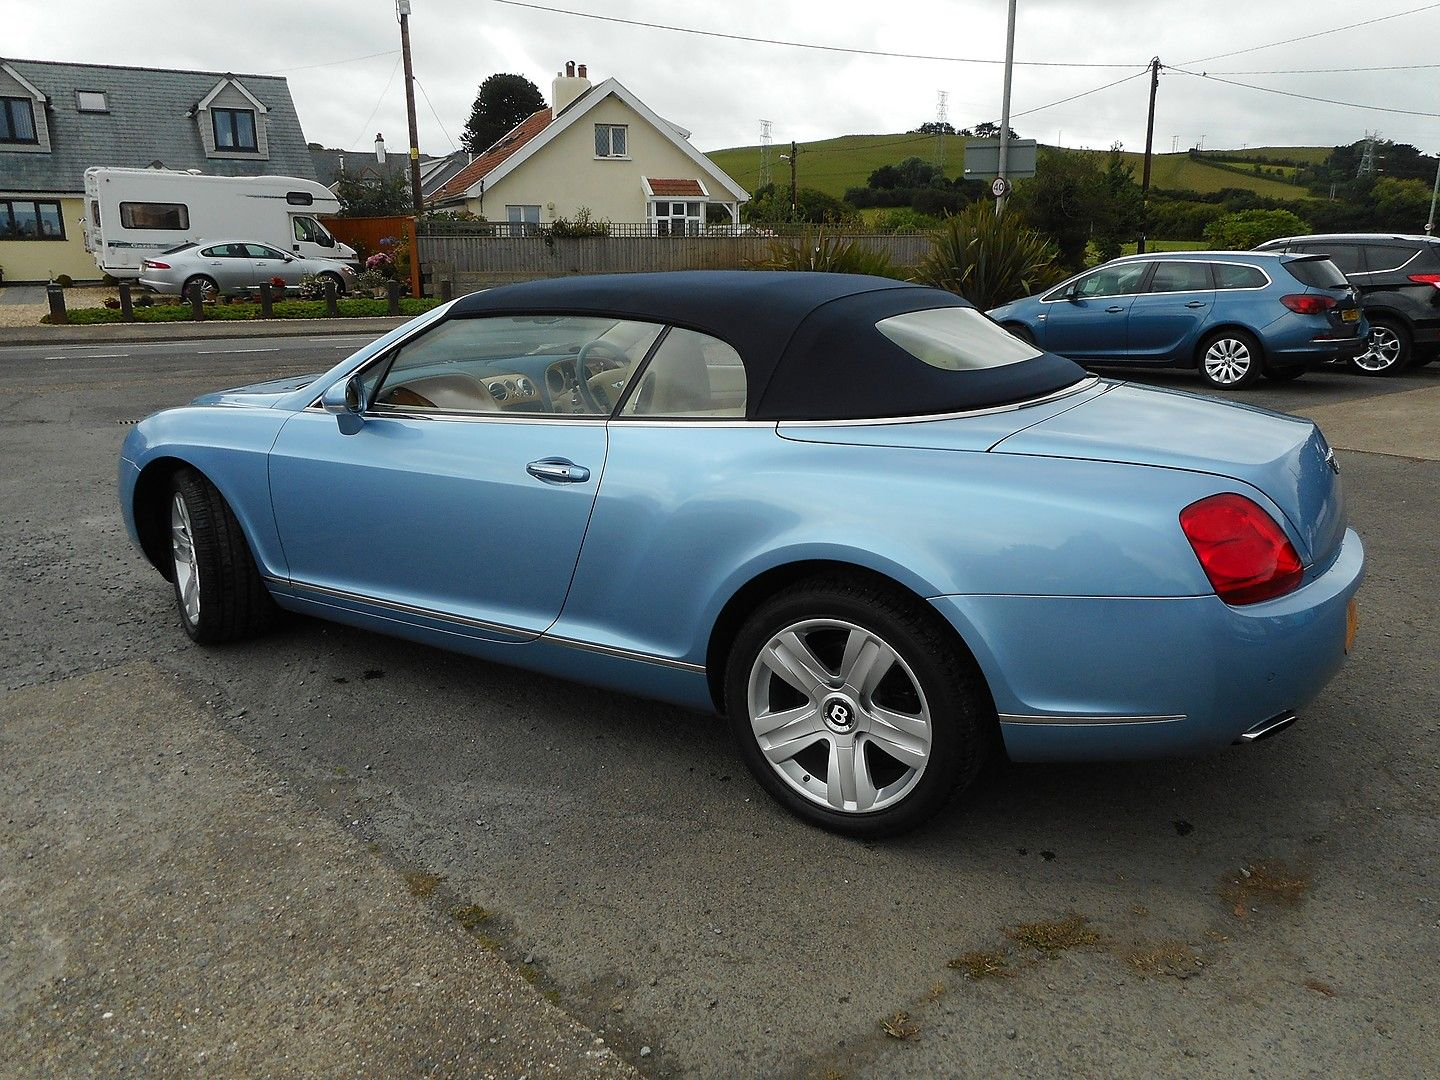 BENTLEY Continental GTC (2007) - Picture 6